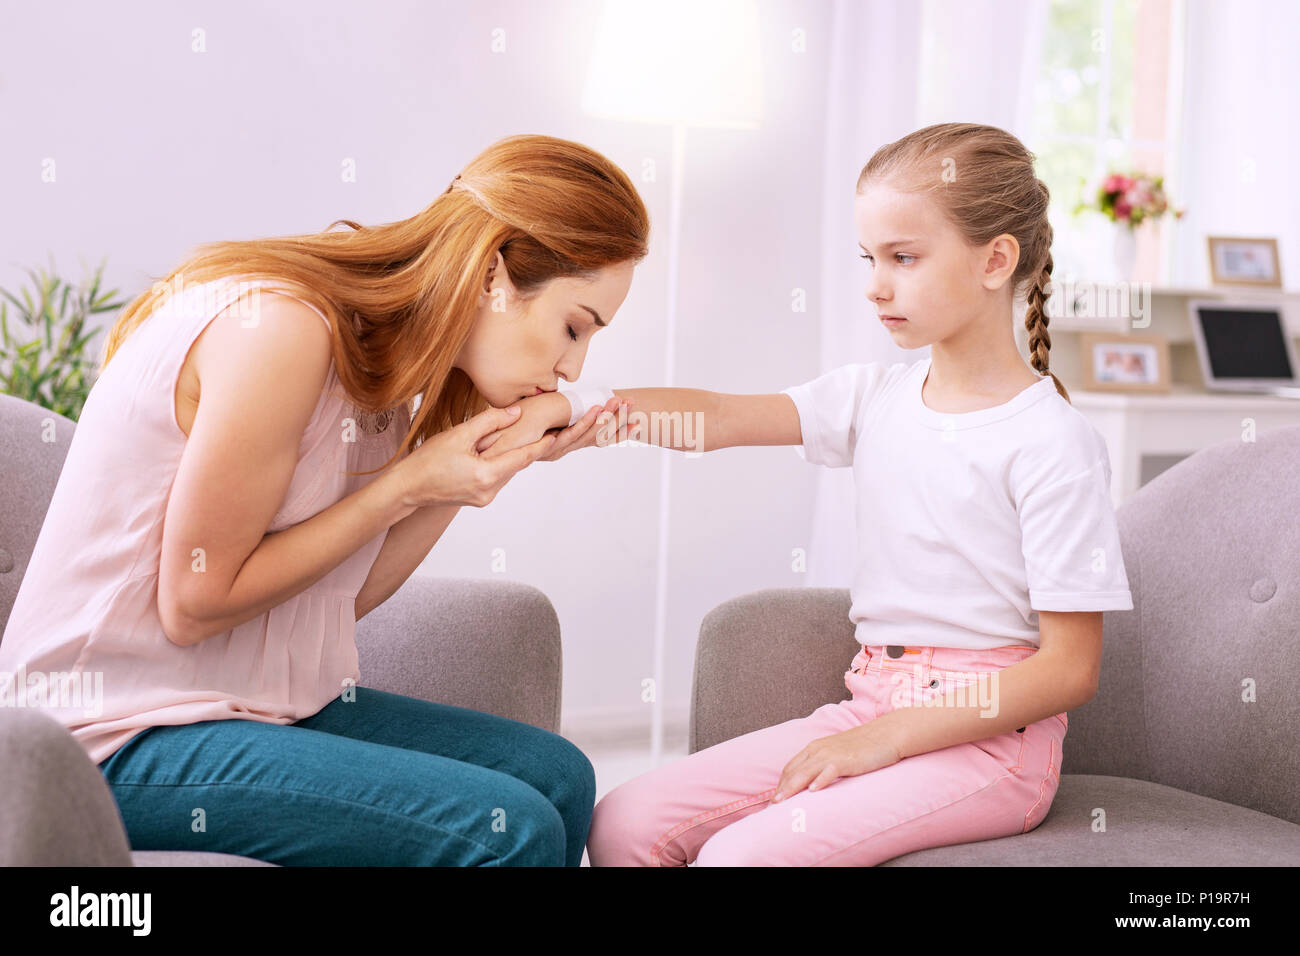 Pleasant anxious woman kissing her daughters hand Stock Photo